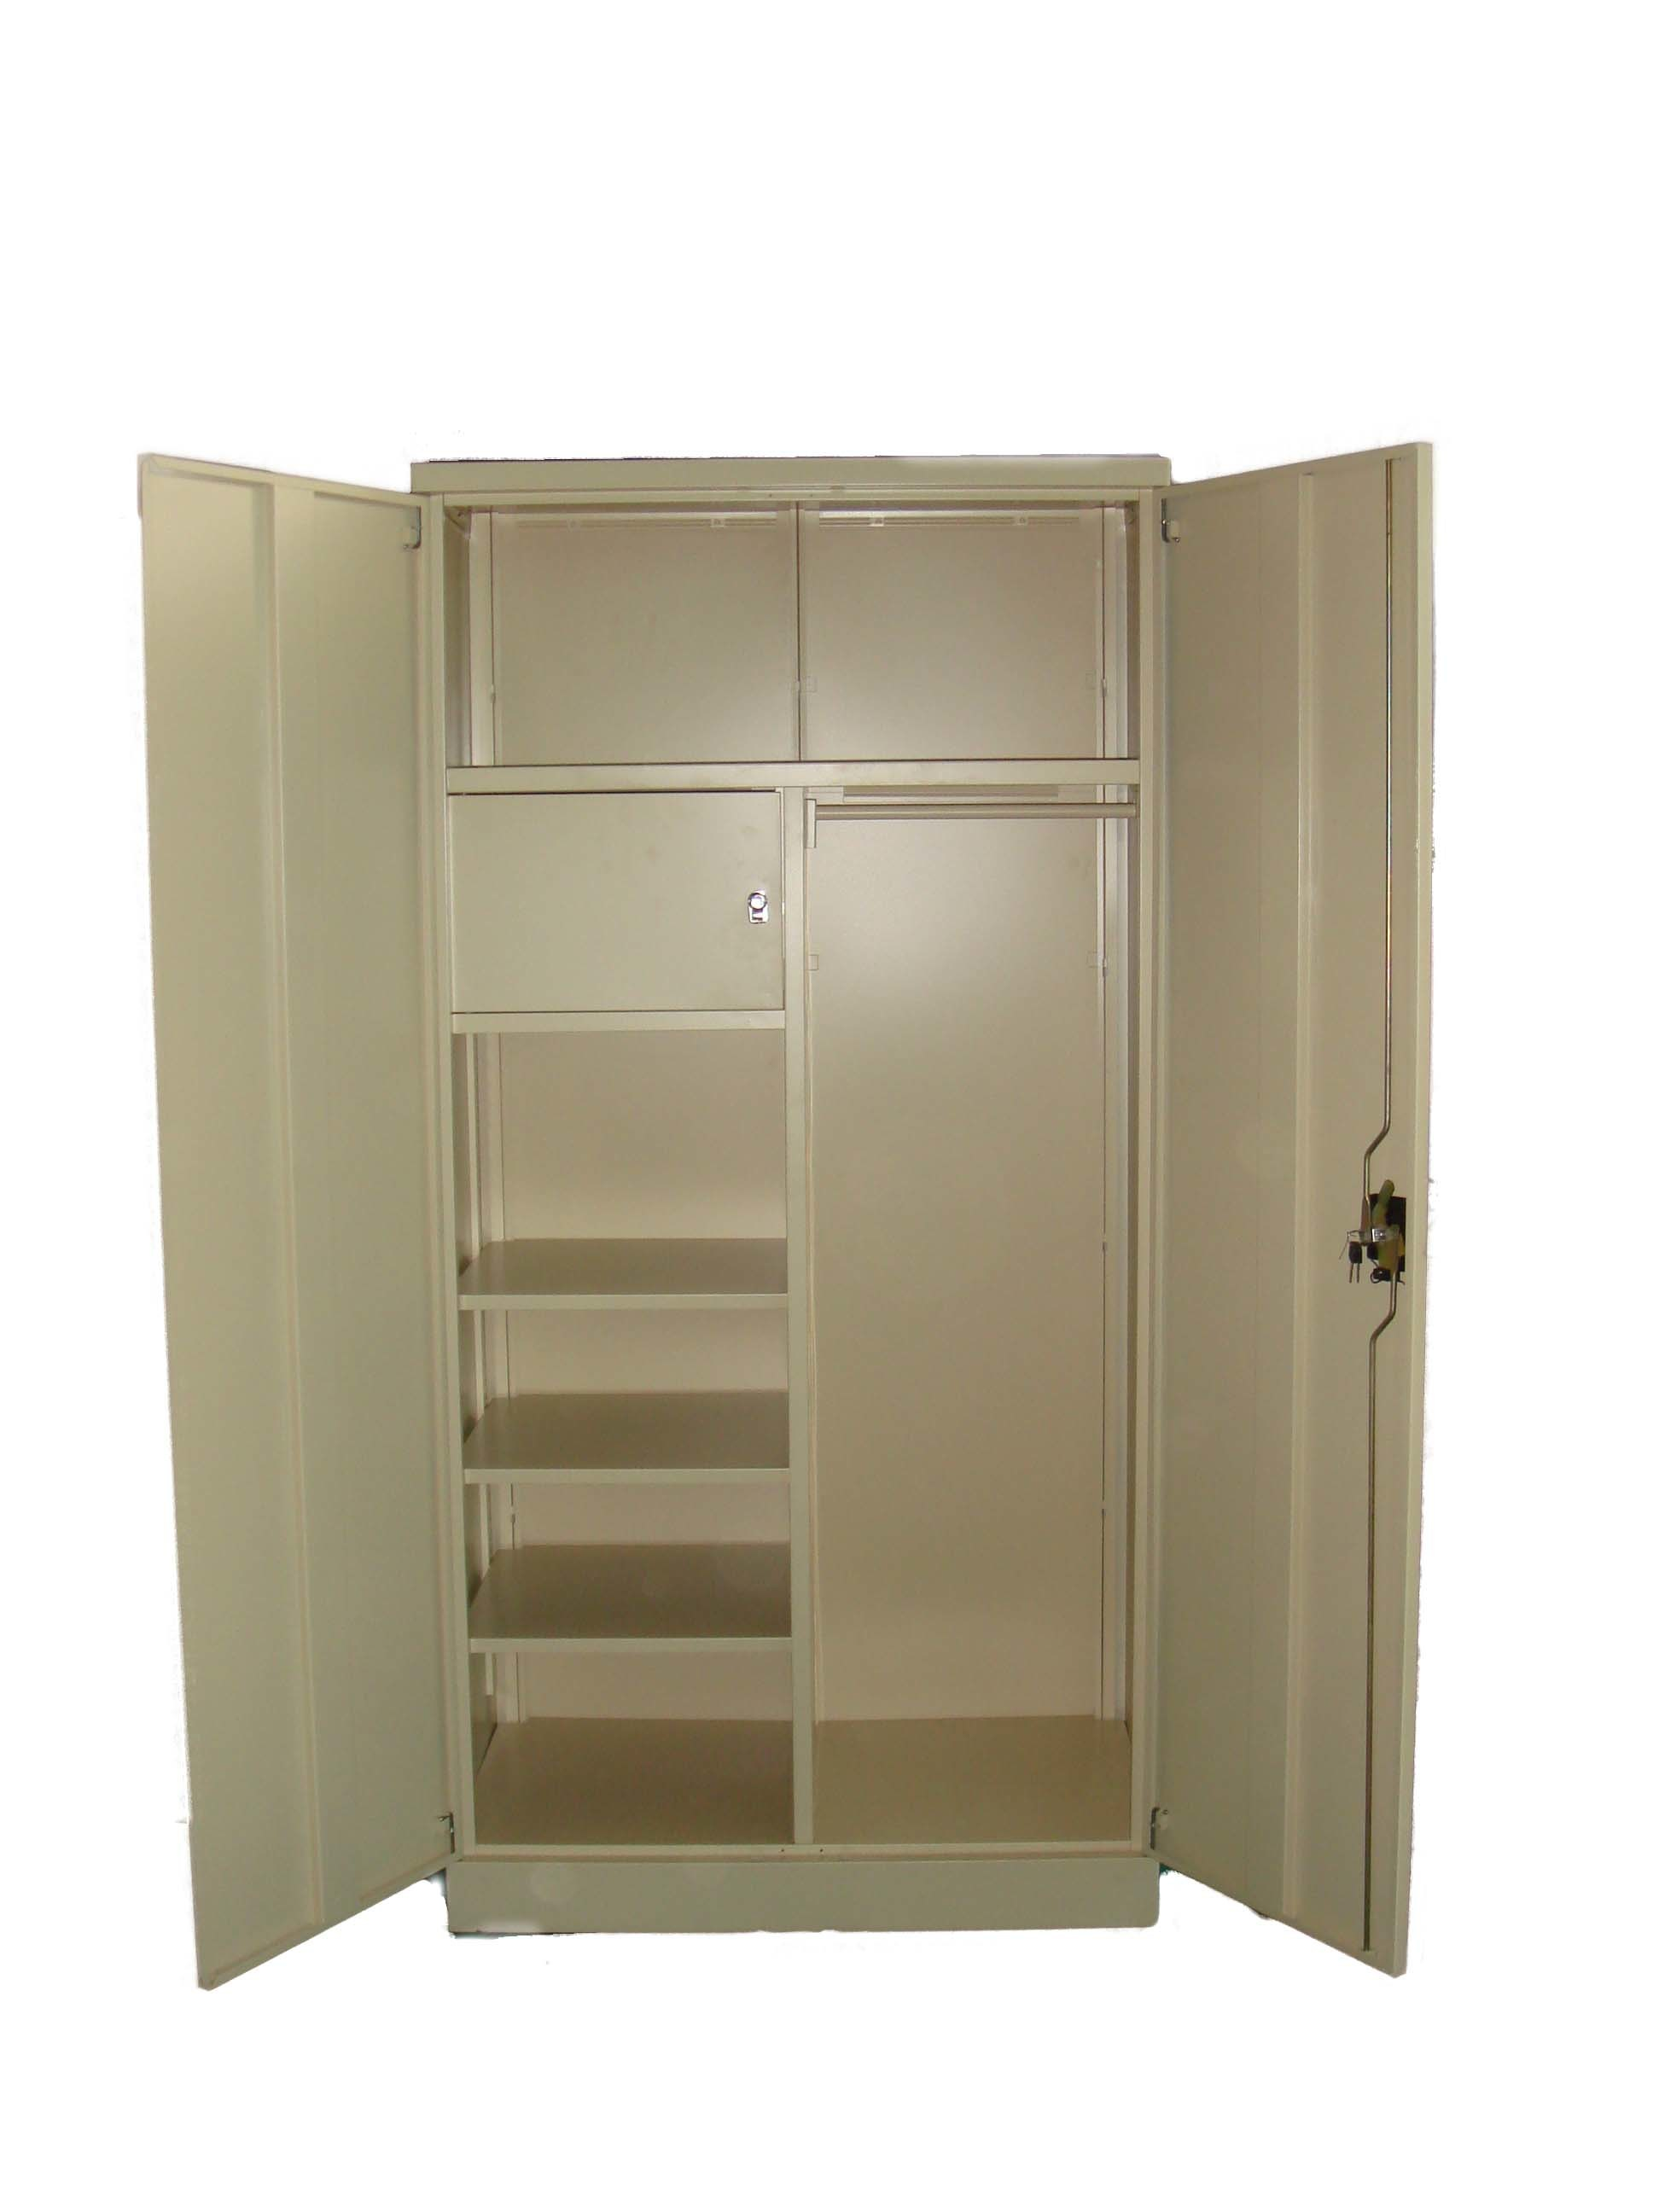 Storage cabinets steel storage cabinets for Storage in cupboards